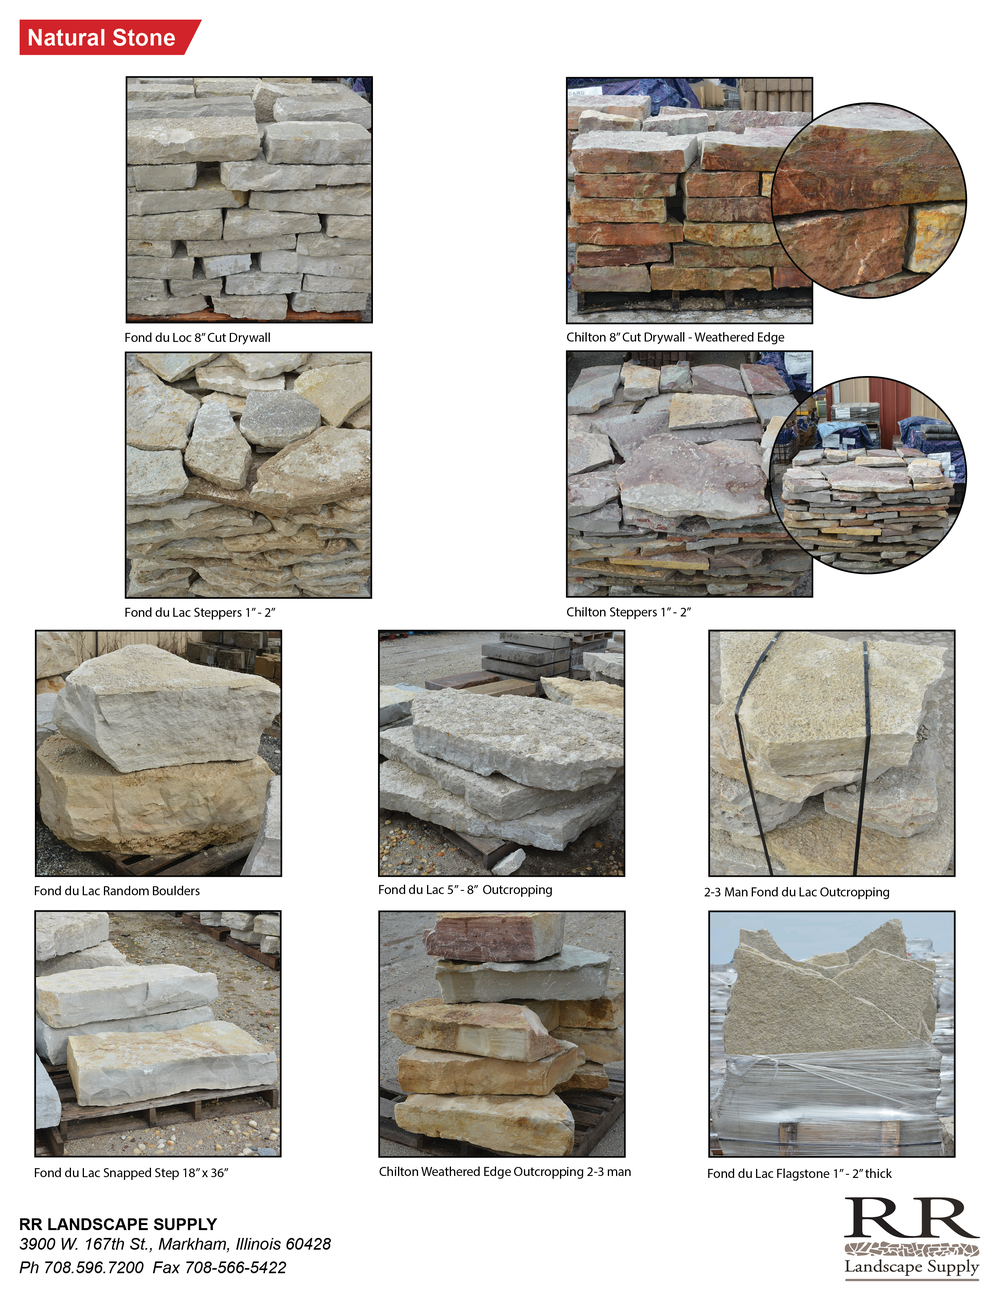 RR Landscape Supply_Bulk Stone Image Guide2.png